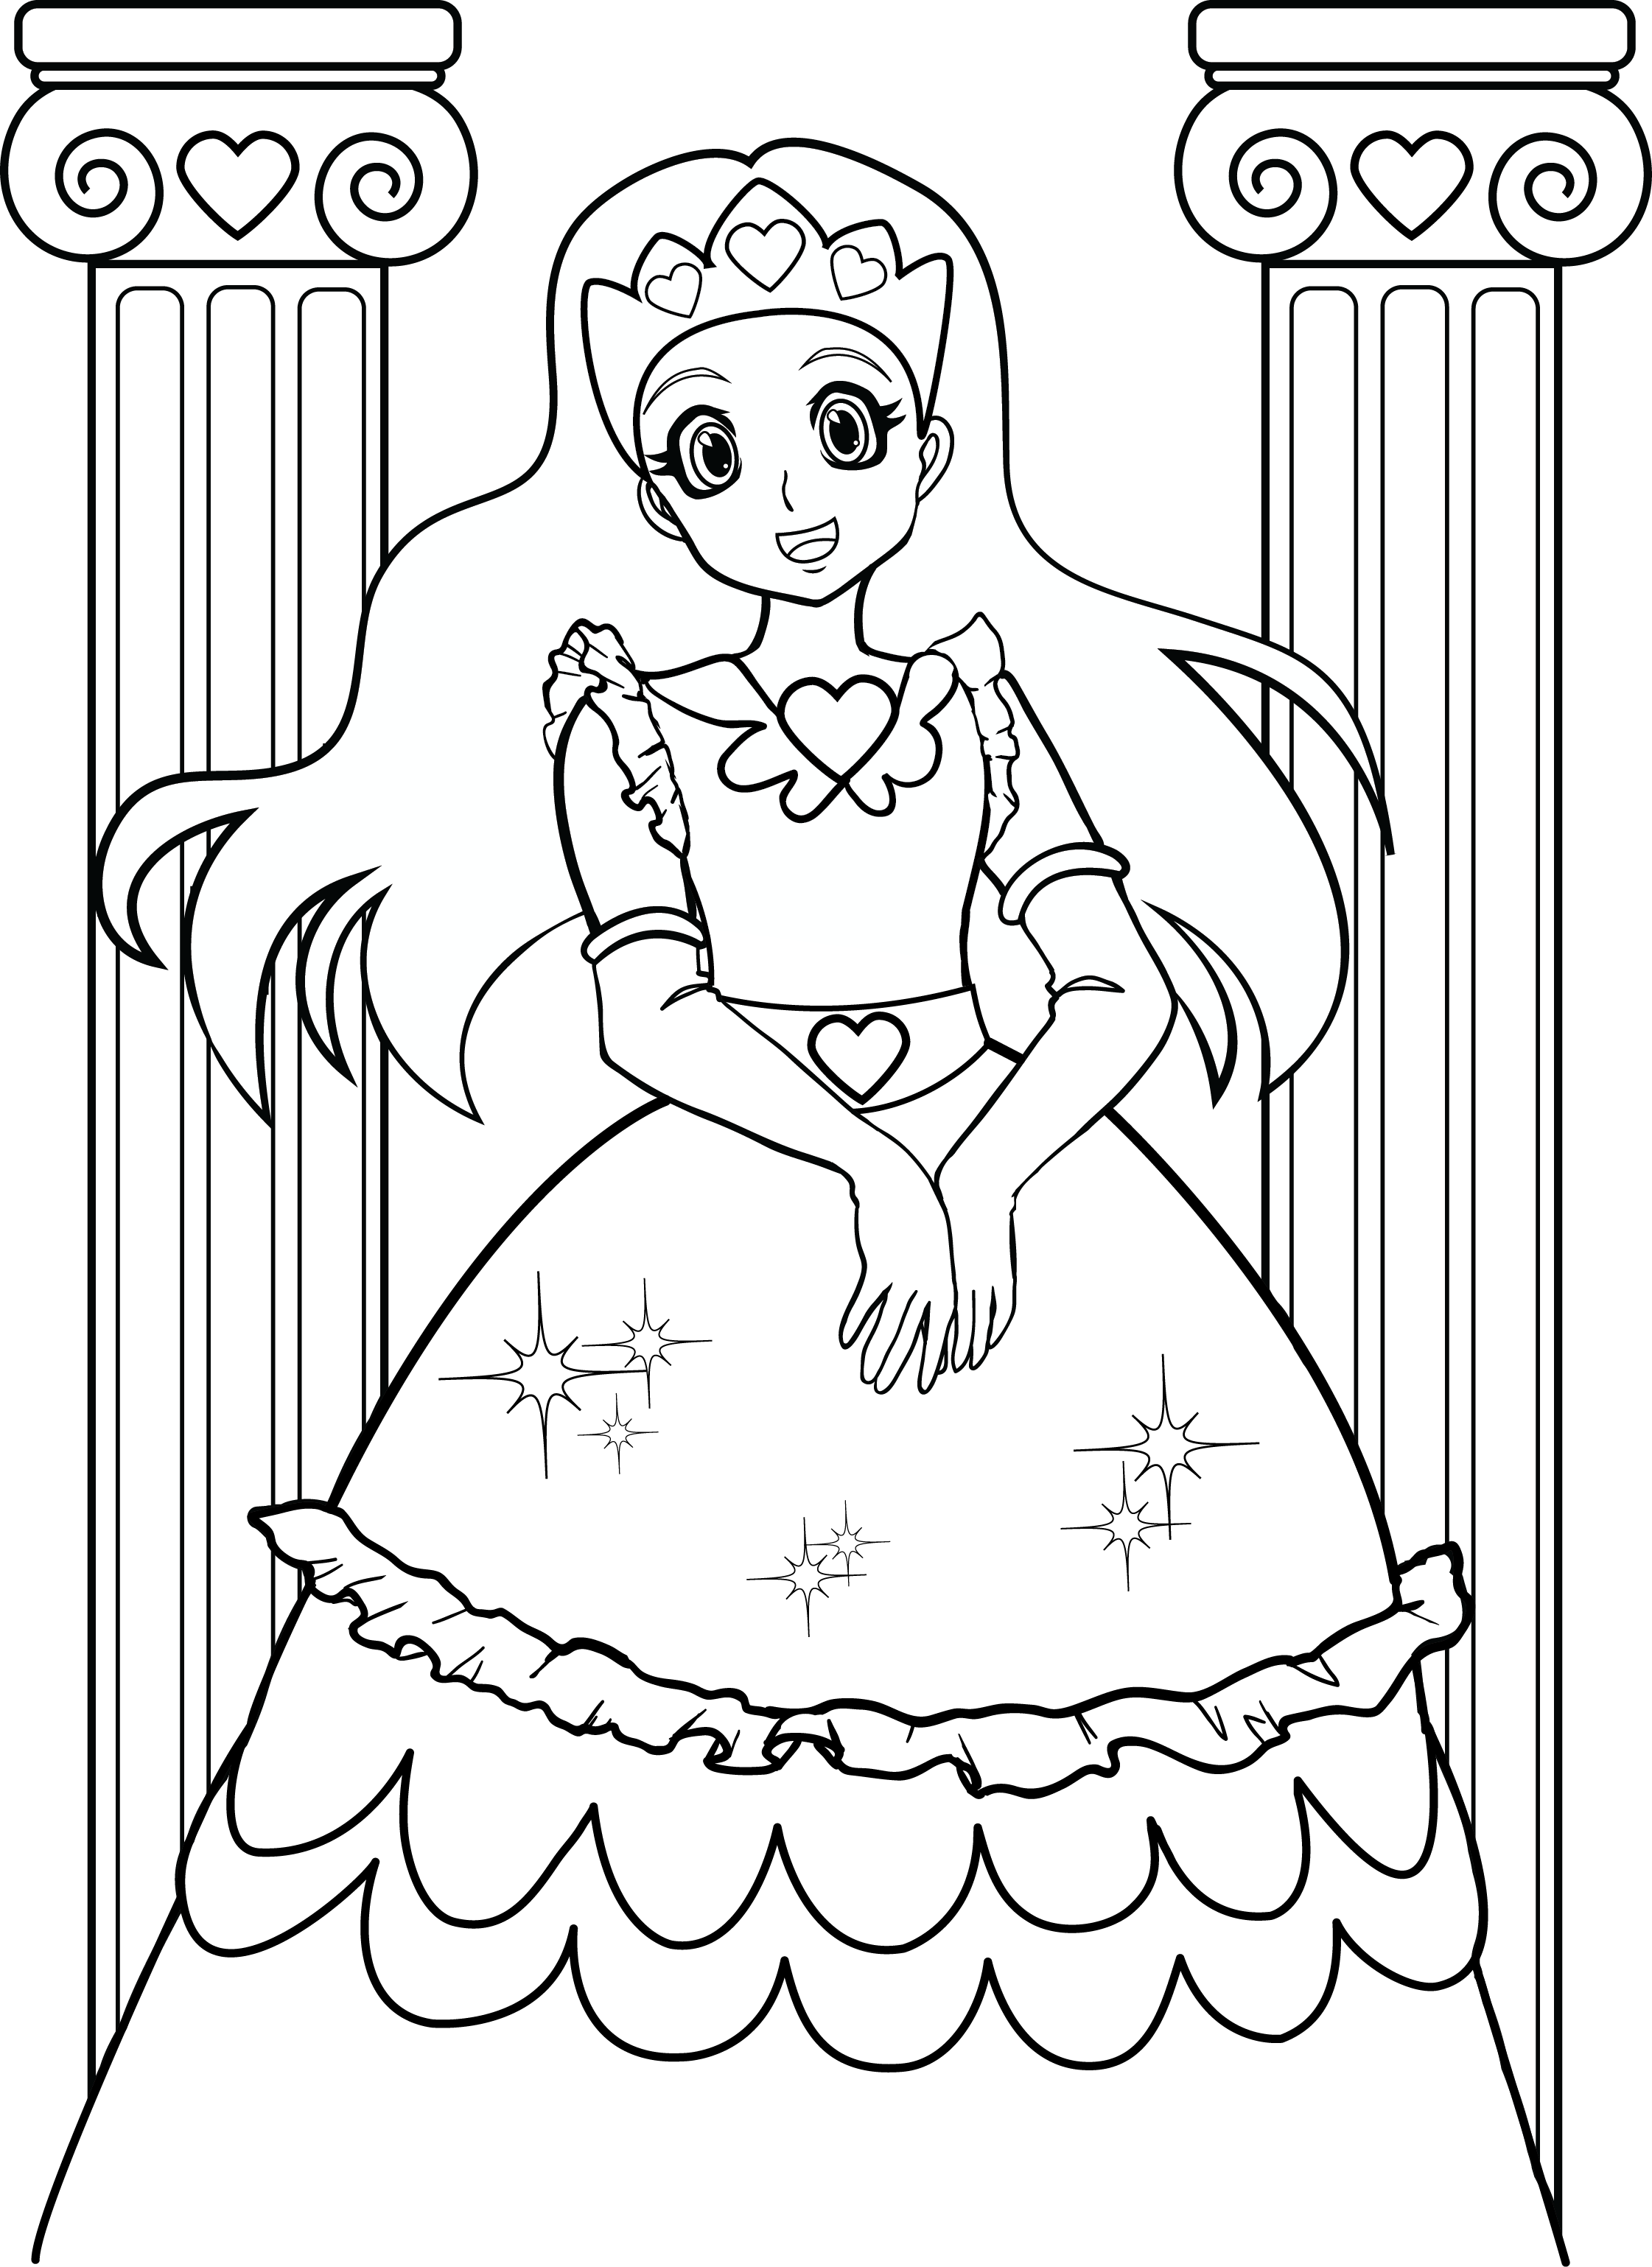 Coloring pictures to print for girls -  Printable Color Pages For Girls